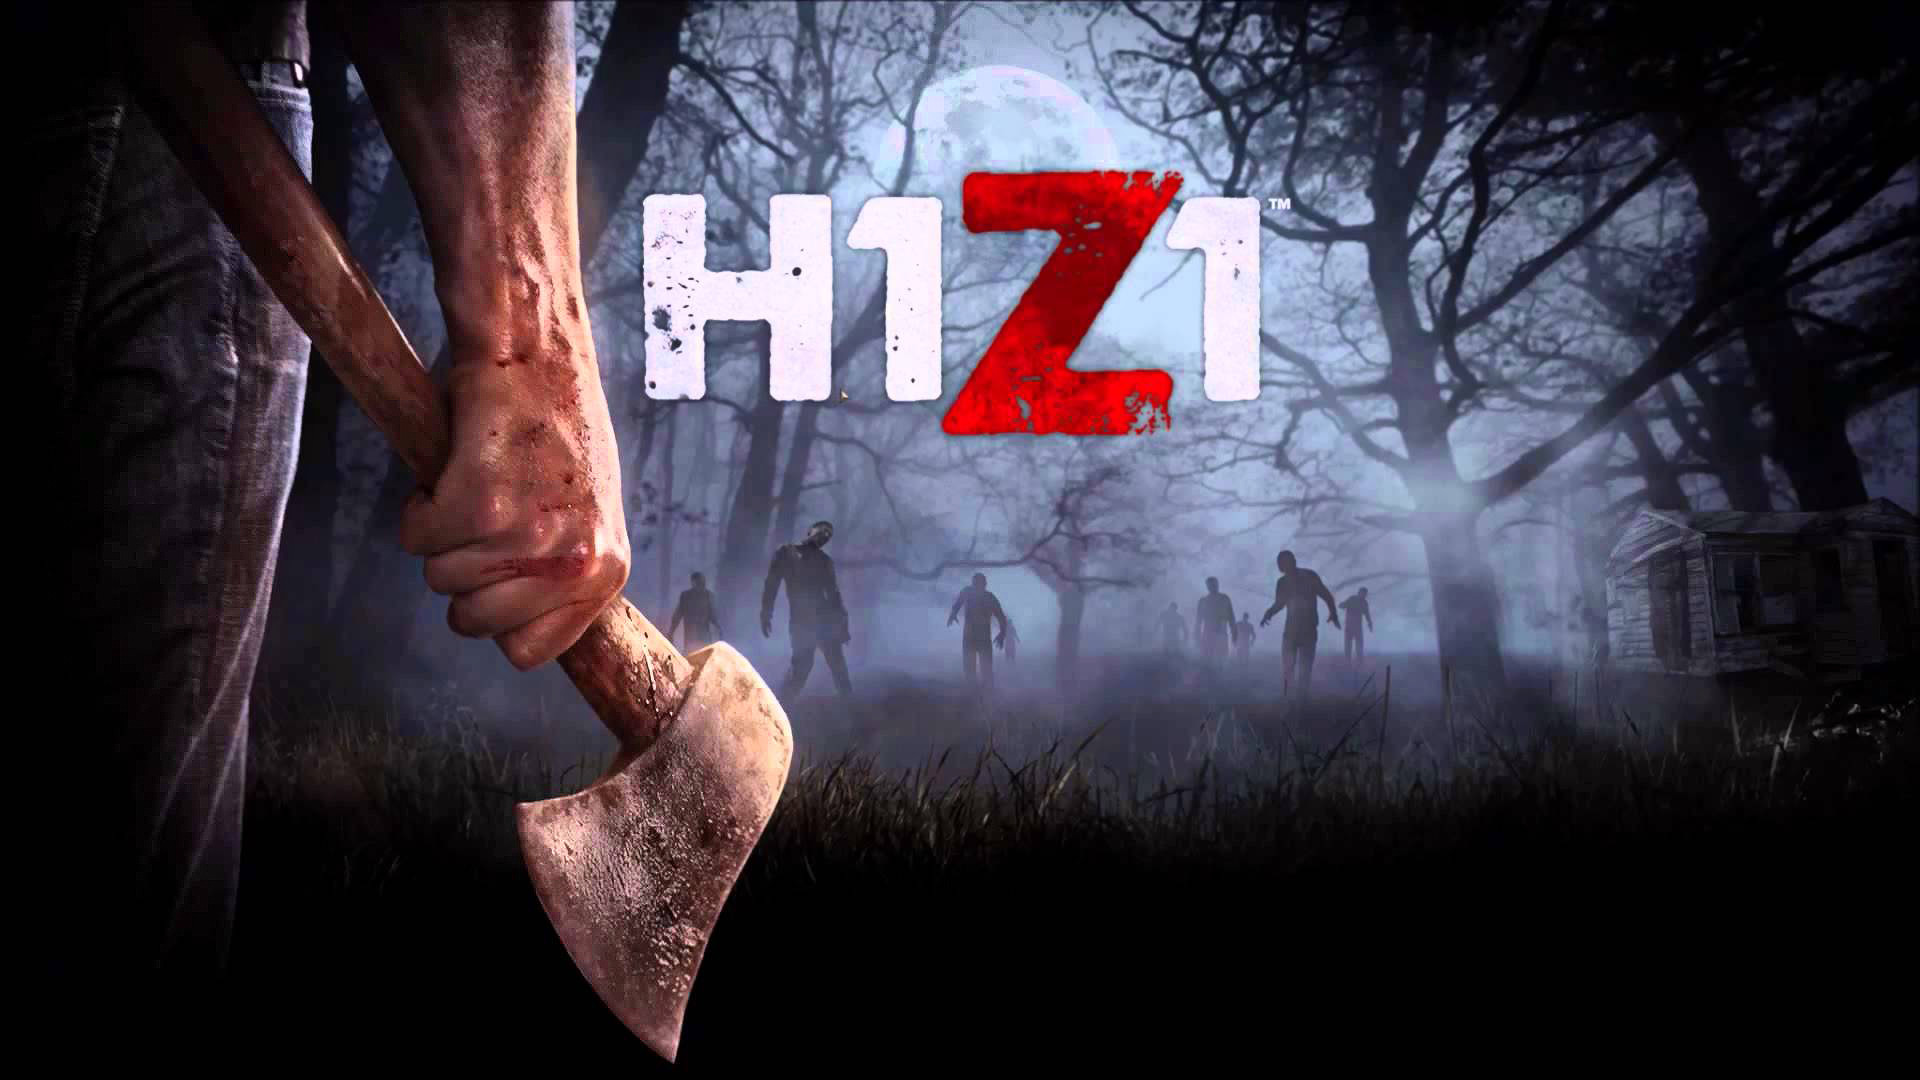 h1z1 wallpapers (85+ background pictures)